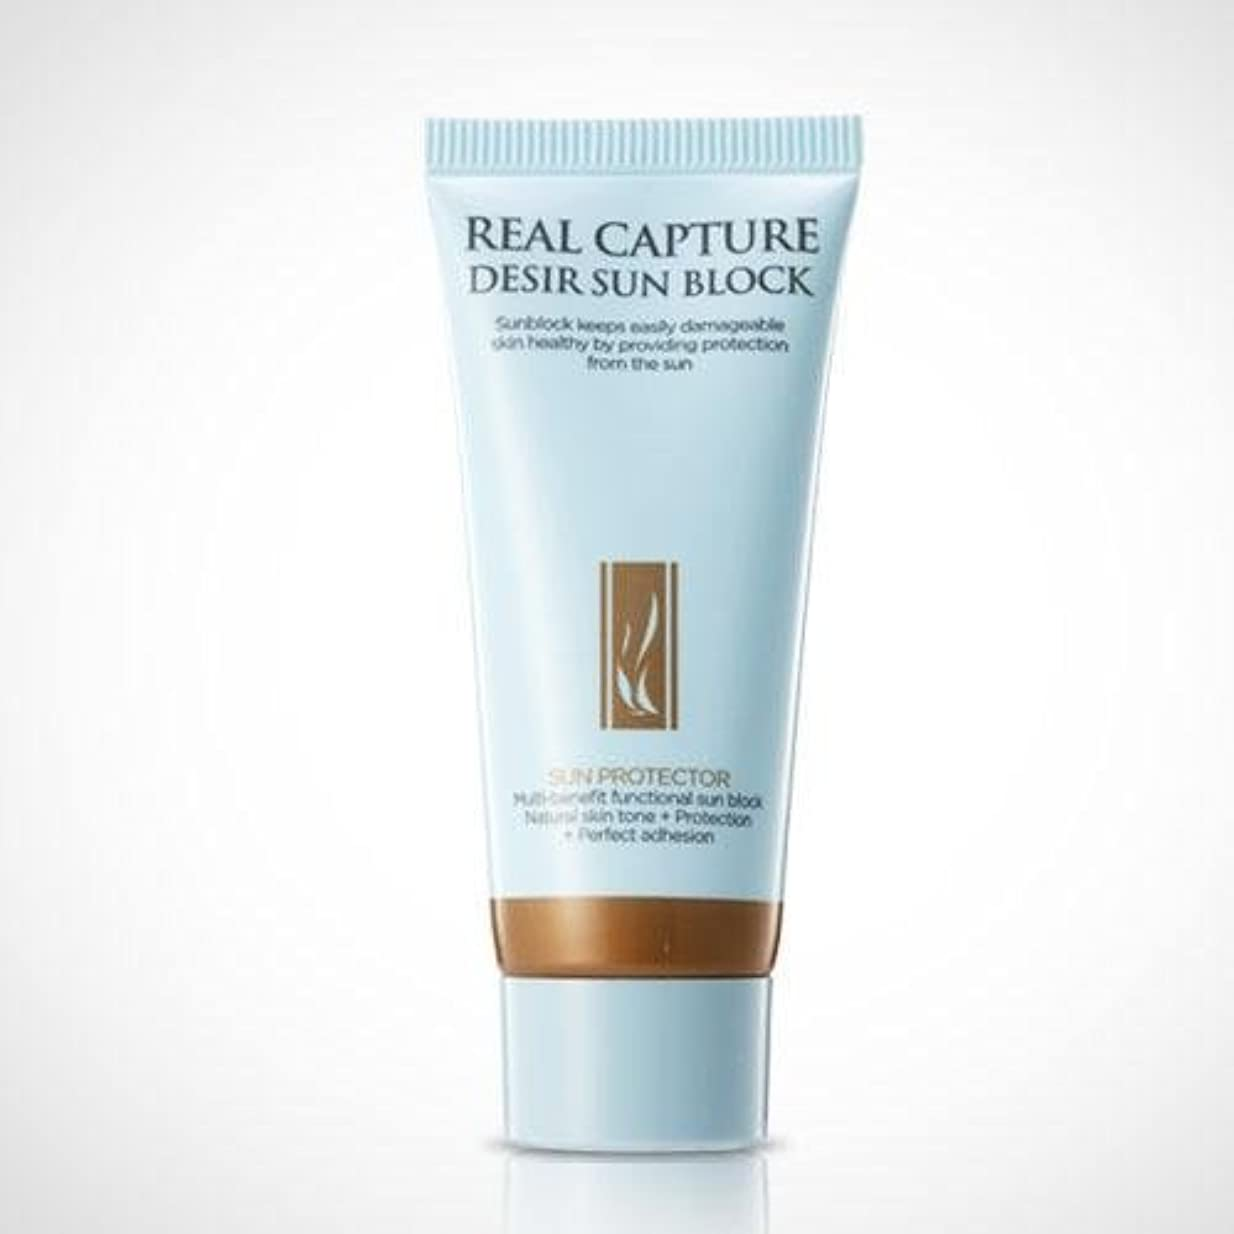 批判的に乱暴な終了するA.H.C Real Capture Desir Sun Block (SPF50+,PA+++) [Korean Import]